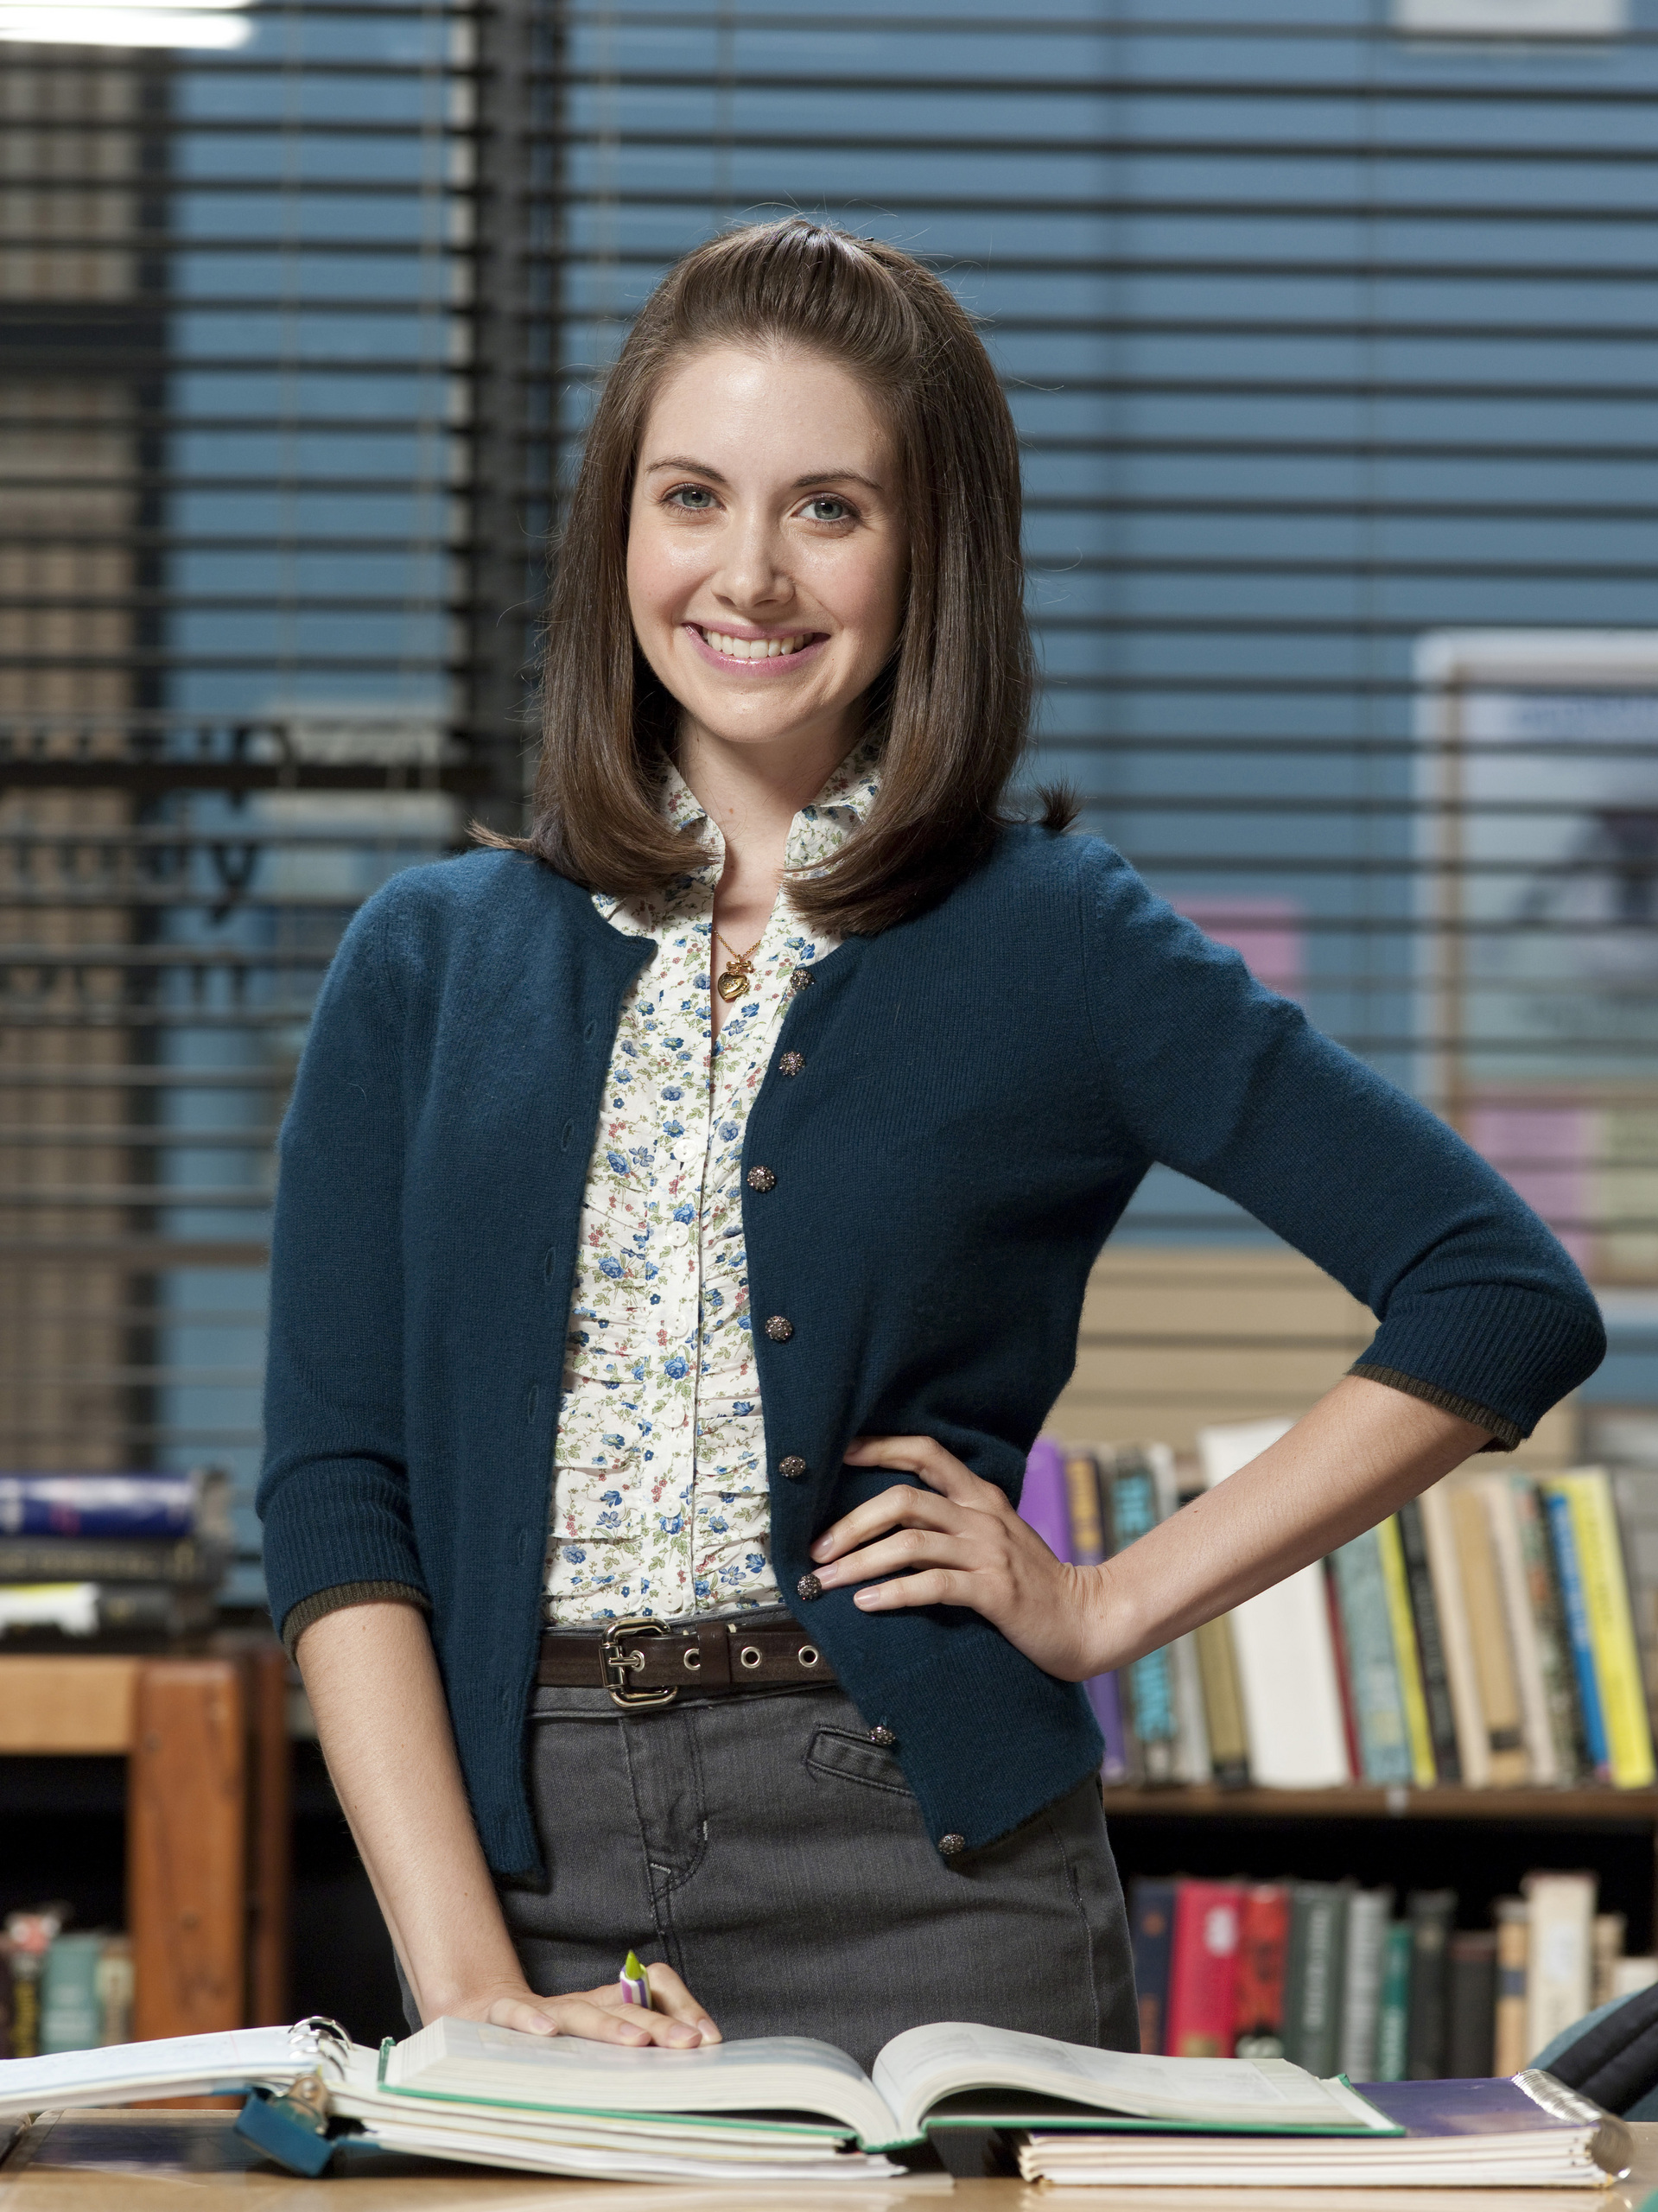 Alison brie community 04 annie039s christmas song 9